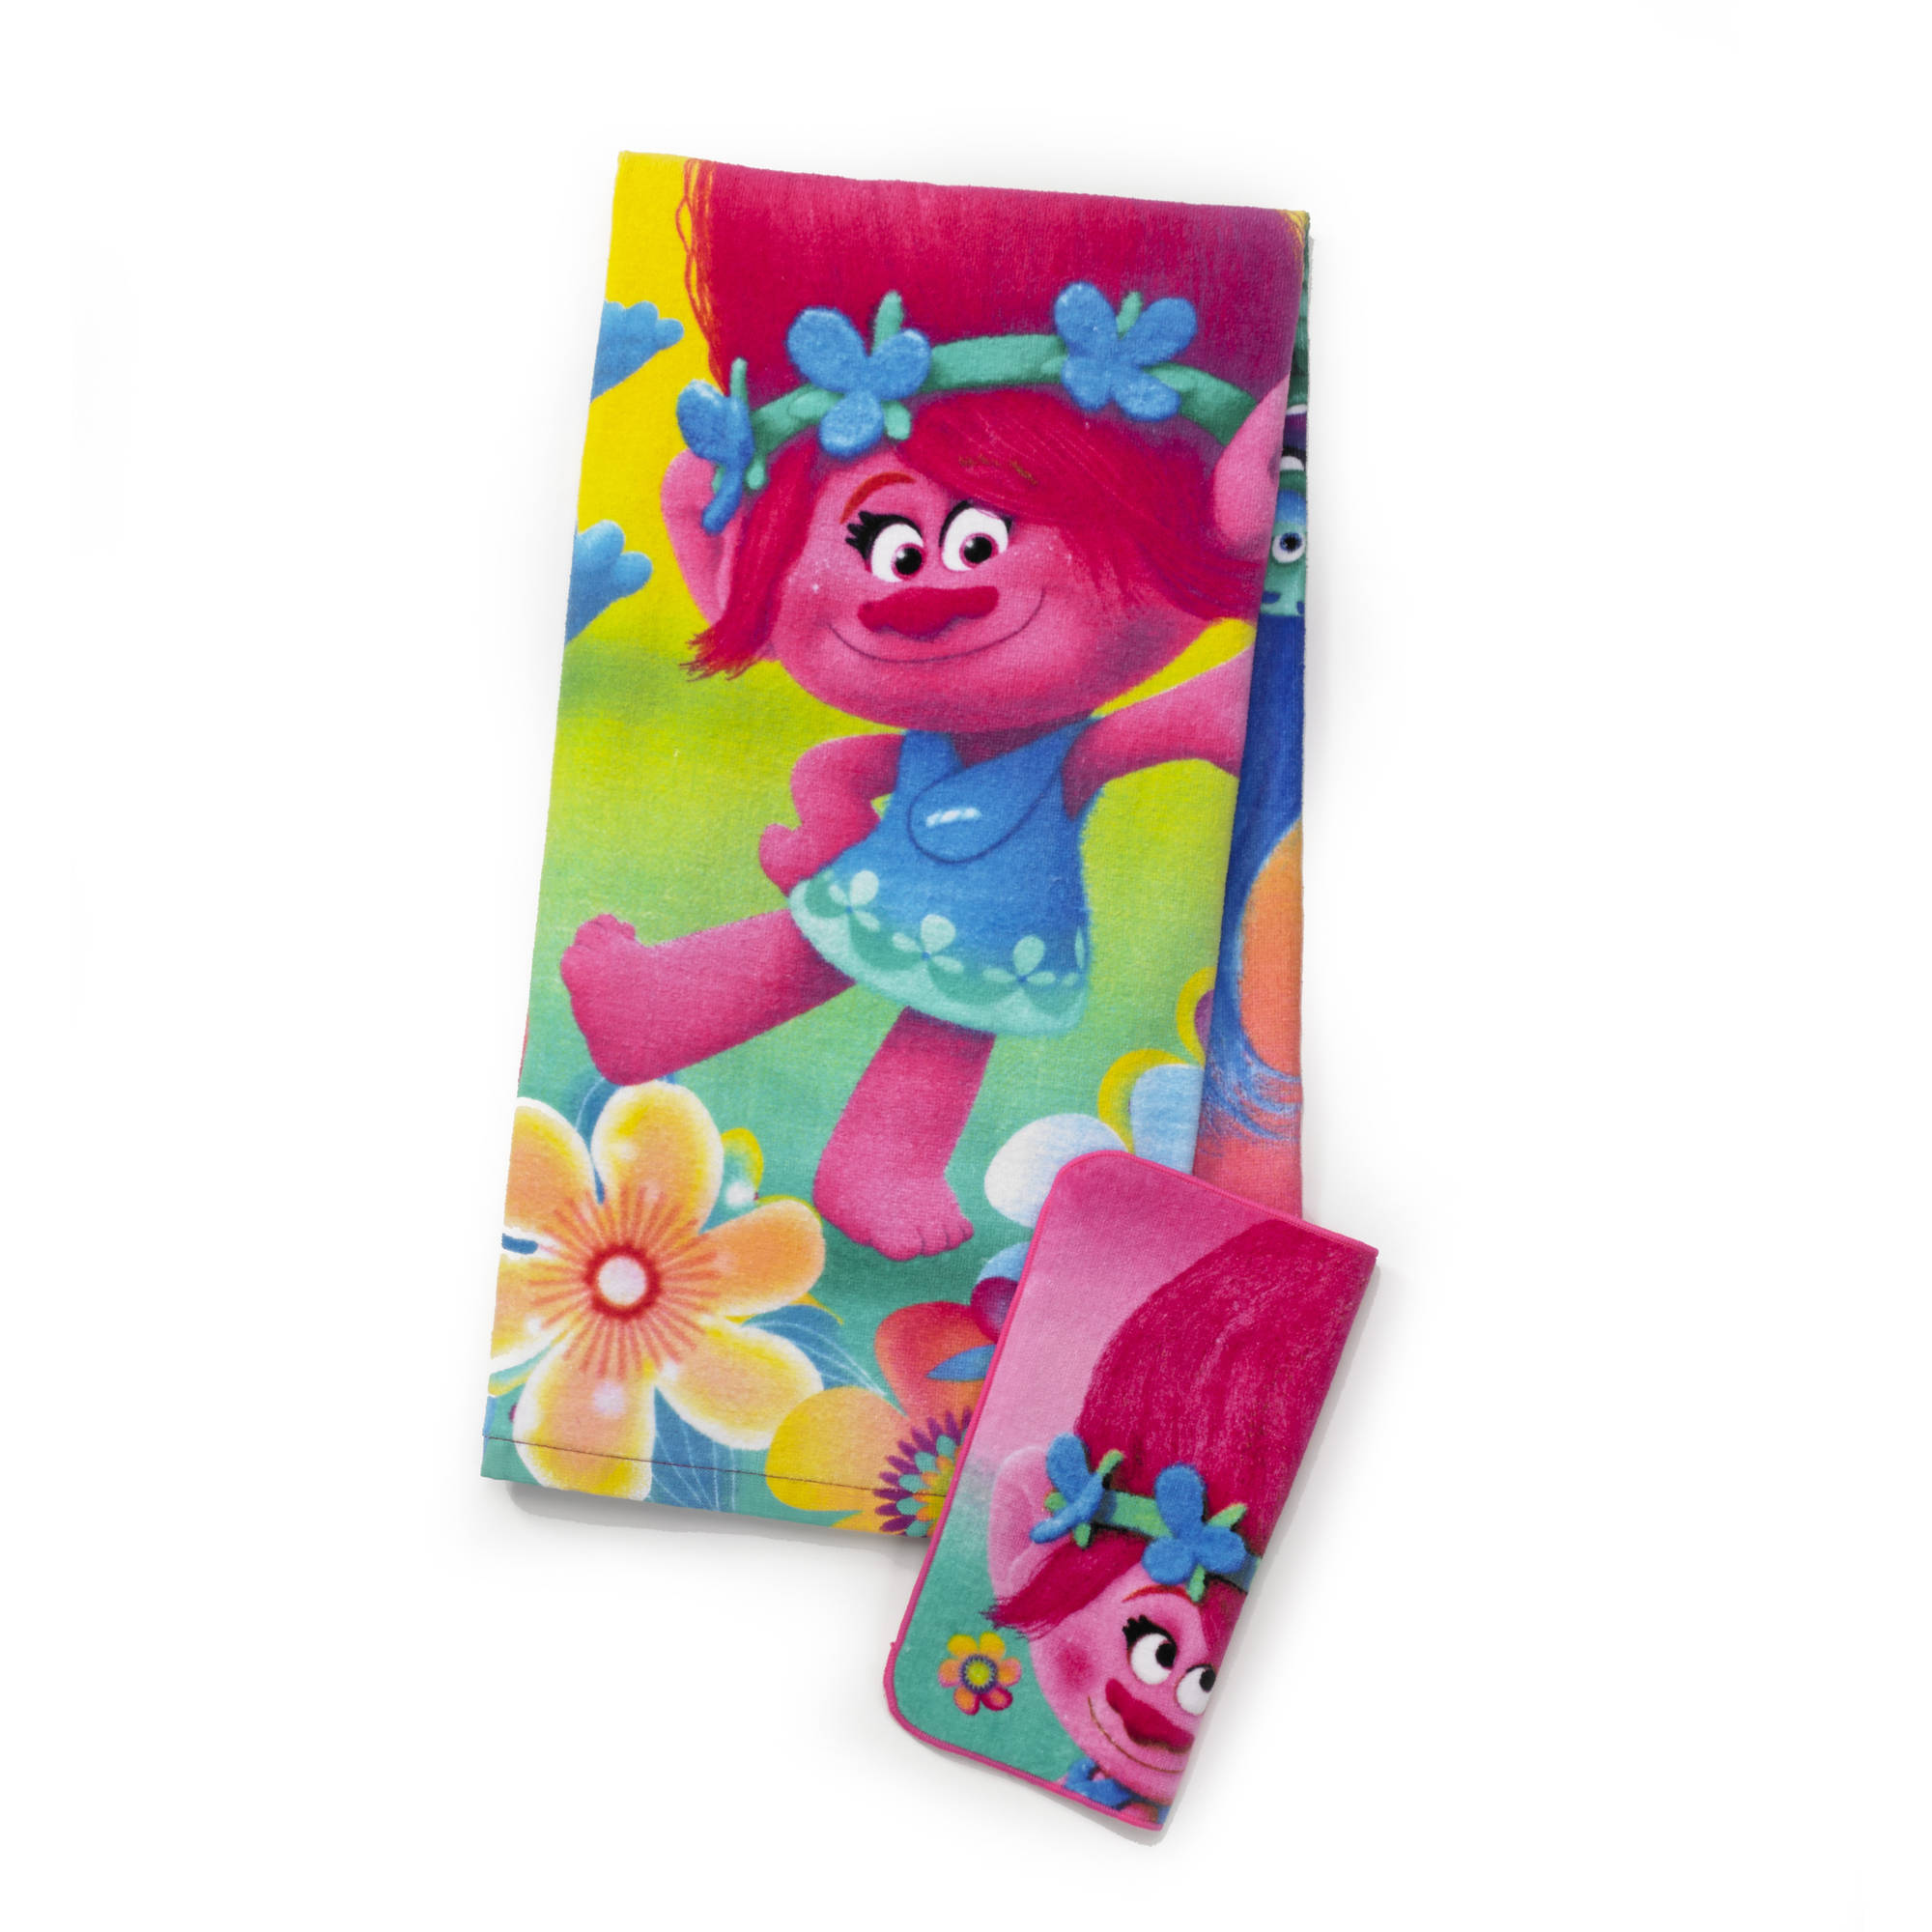 DreamWorks' Trolls 2-Piece Bath Wash Set